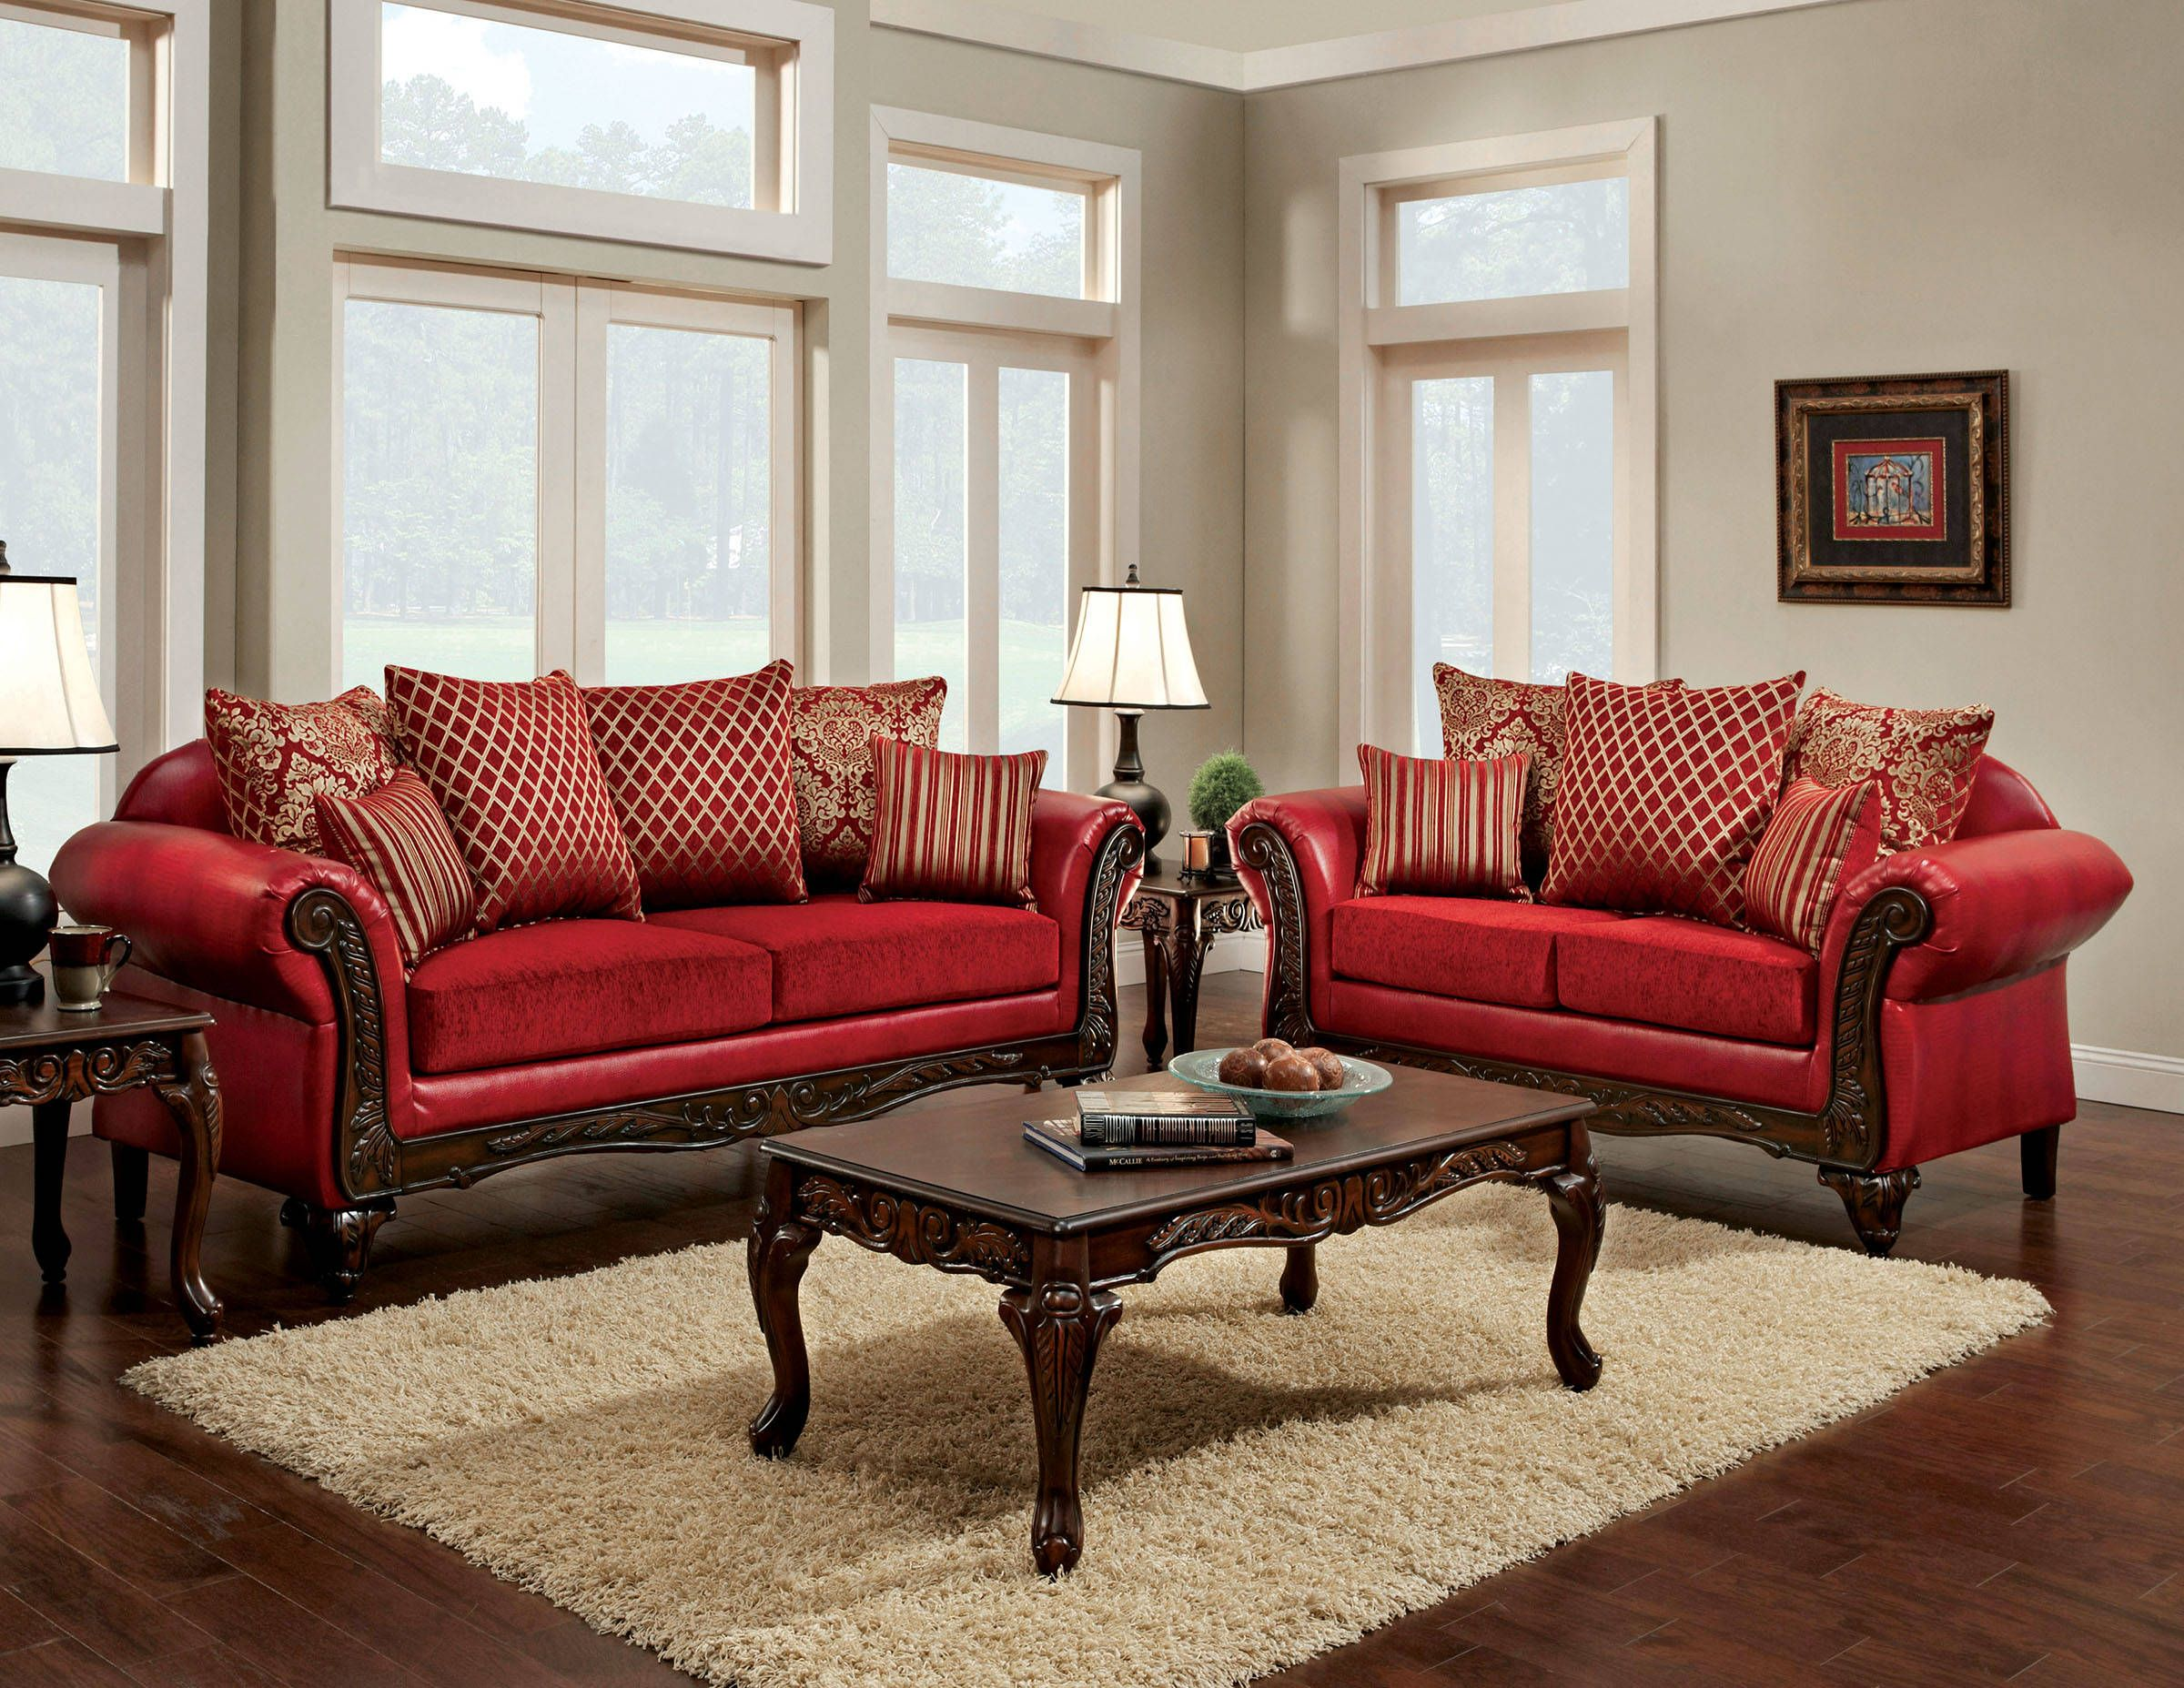 Pin On The Classy Home Furniture Mall #red #living #room #table